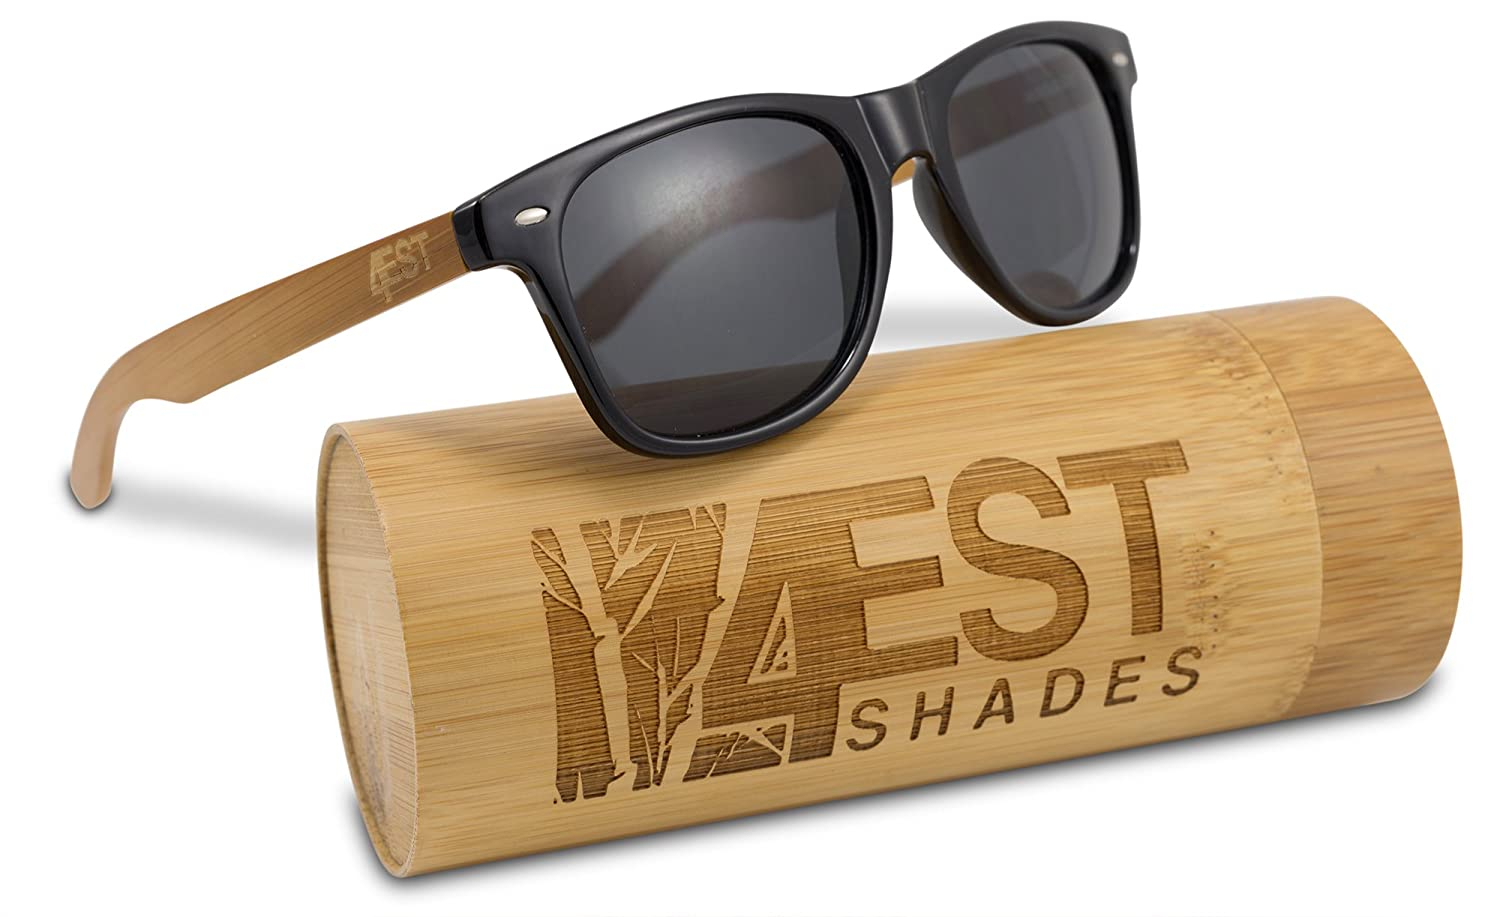 64e9dcefbc Bamboo Sunglasses - 100% Polarized wooden shades for Men   women from the